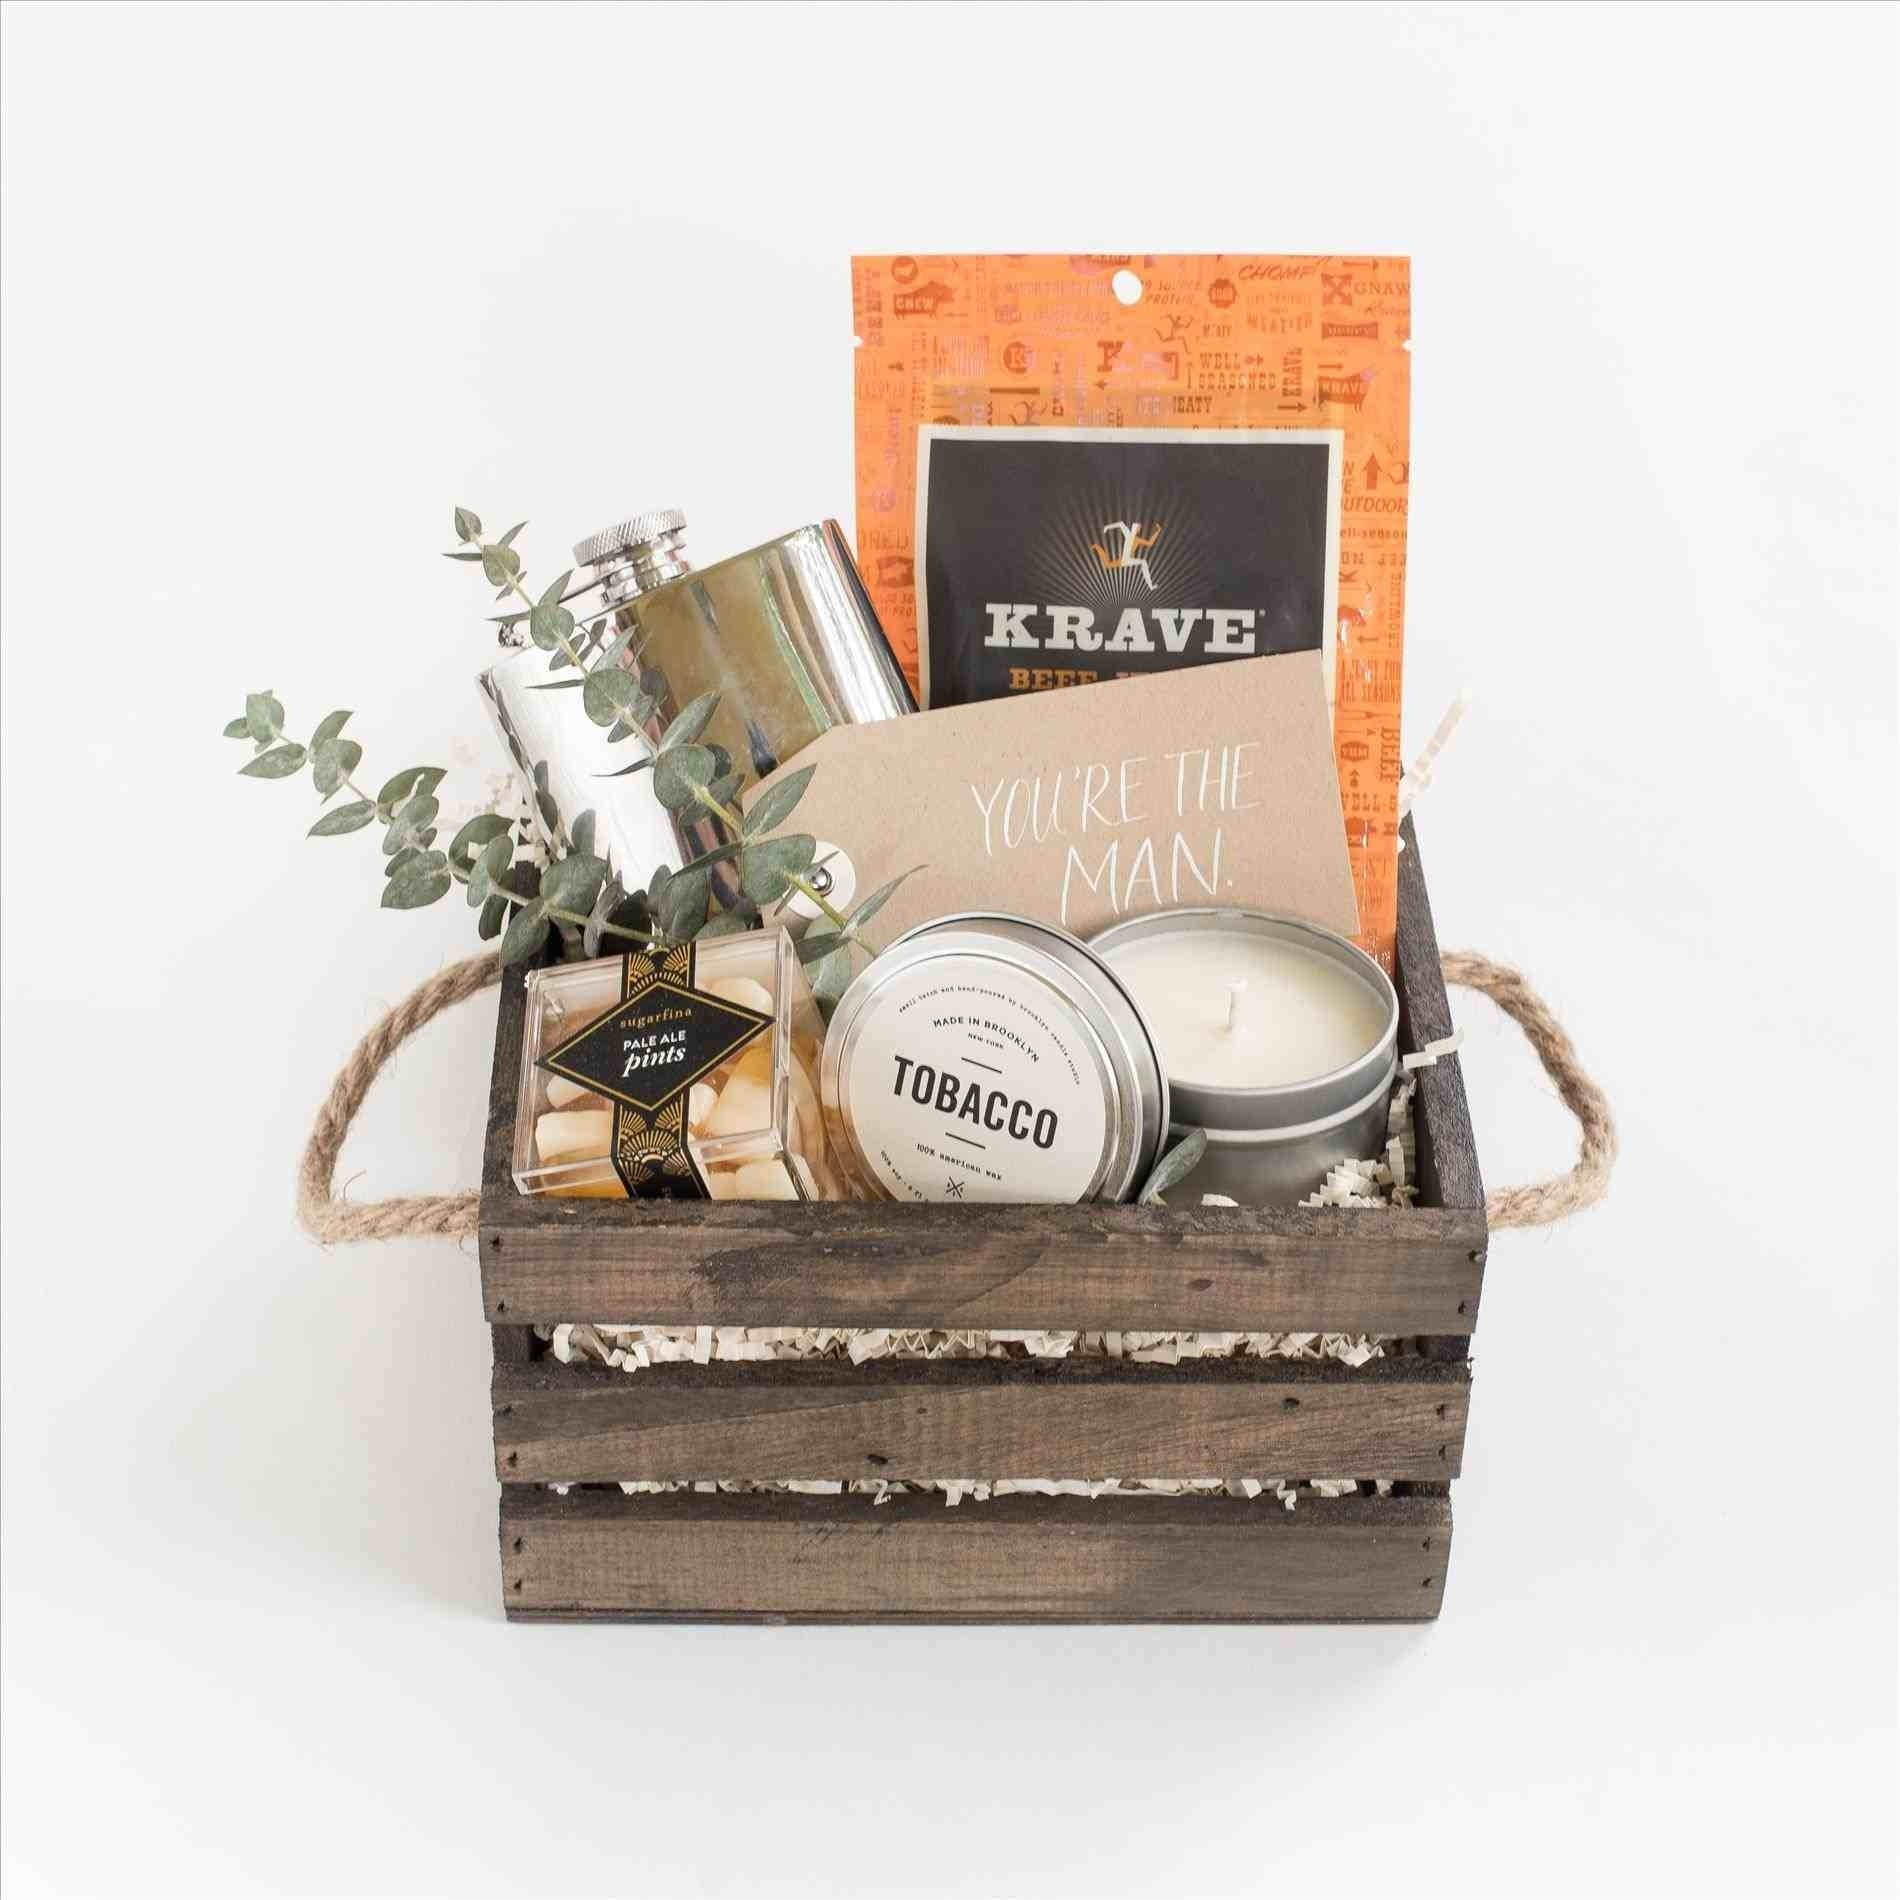 10 Trendy Thank You Gift Ideas For Men baskets rhgohealthubiz golf thank you gift ideas for men homemade